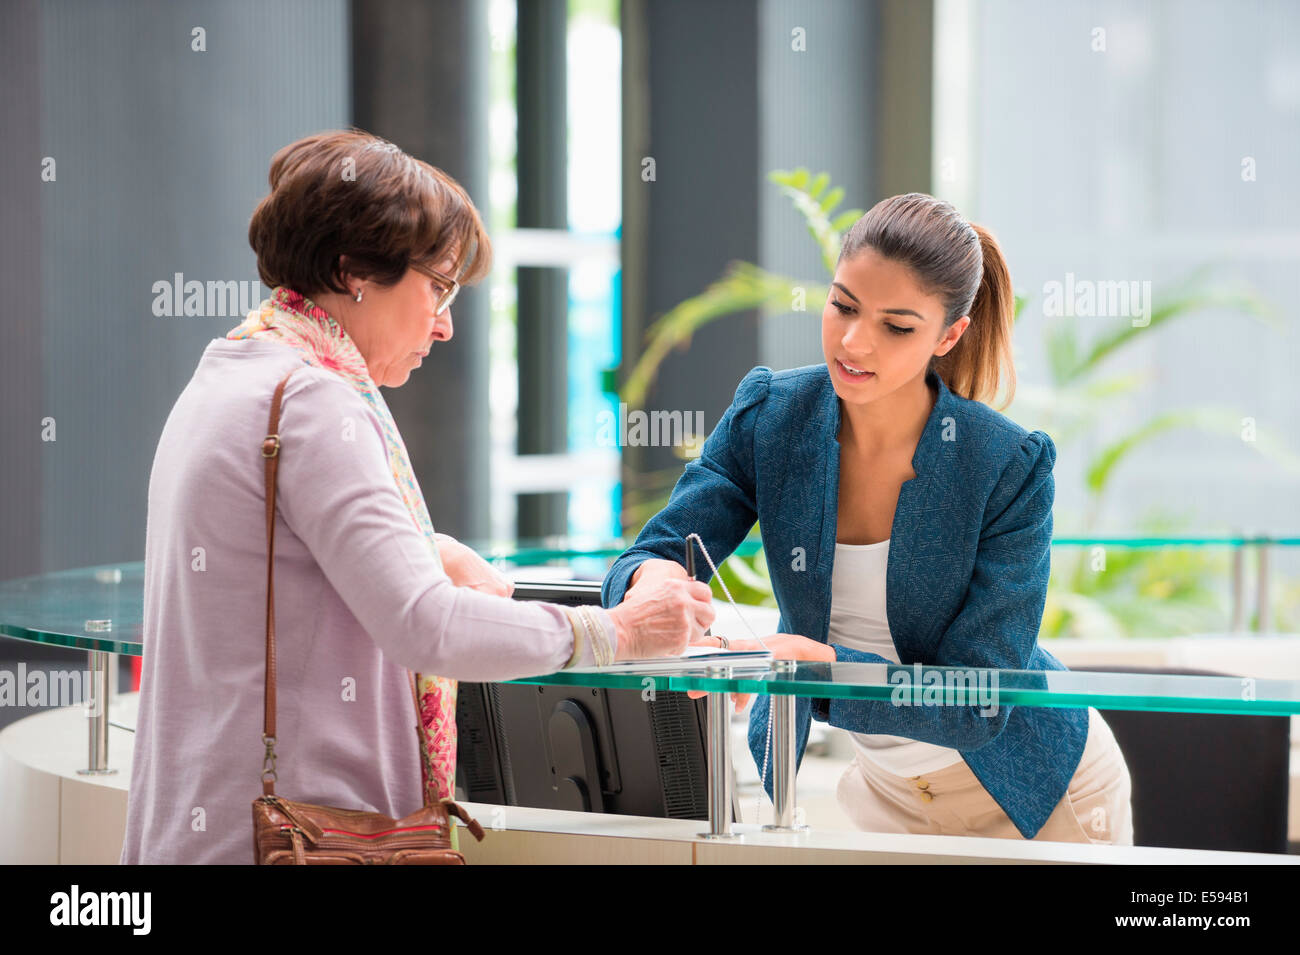 Woman signing paper at reception desk - Stock Image